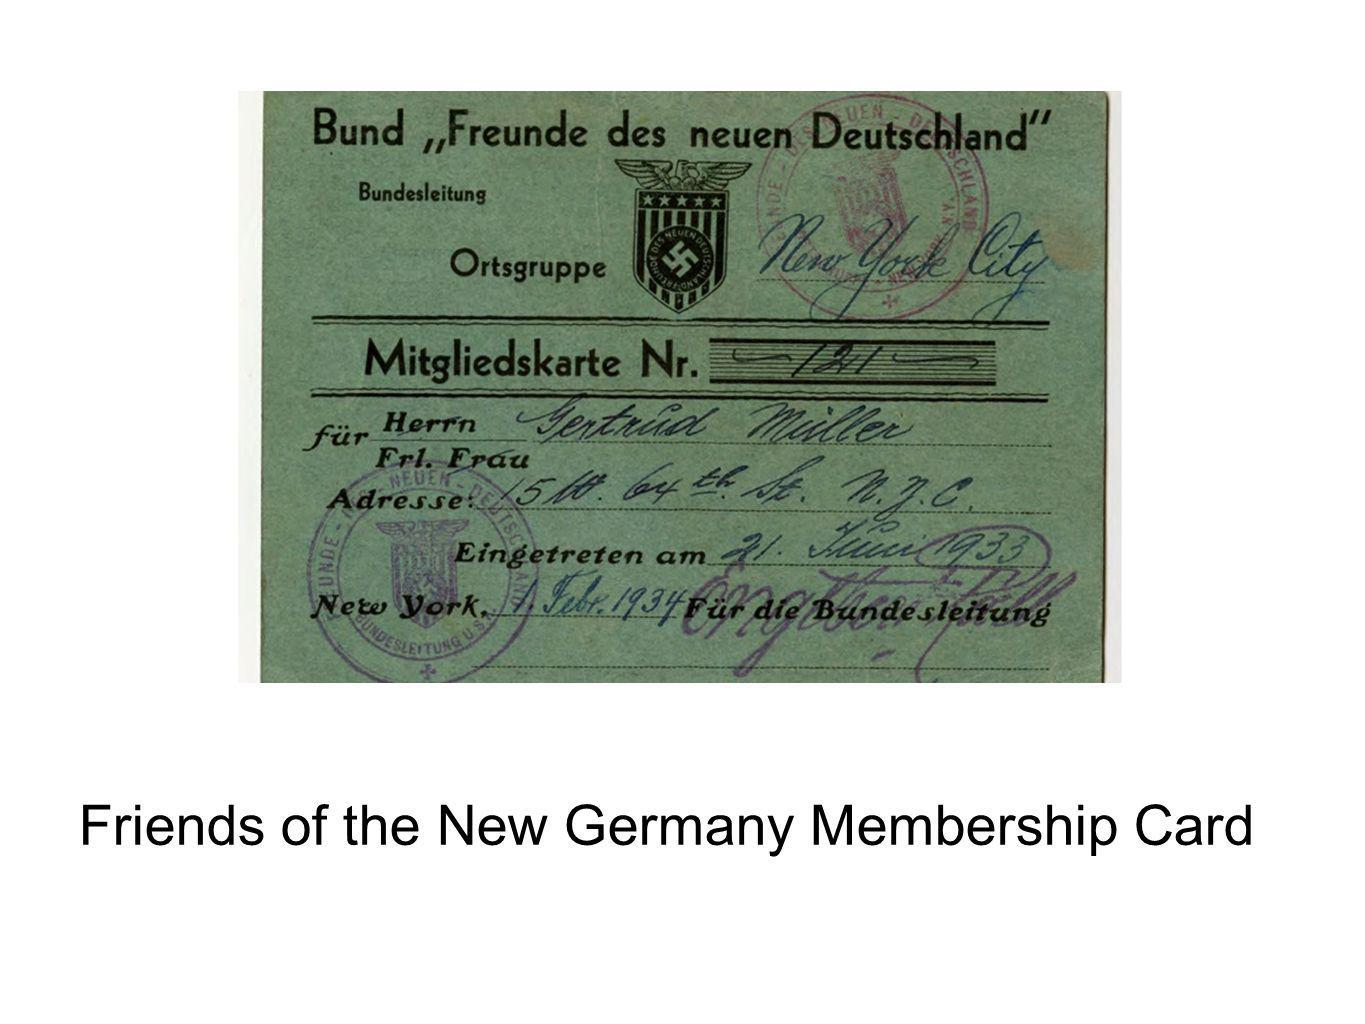 Friends of the New Germany Membership Card